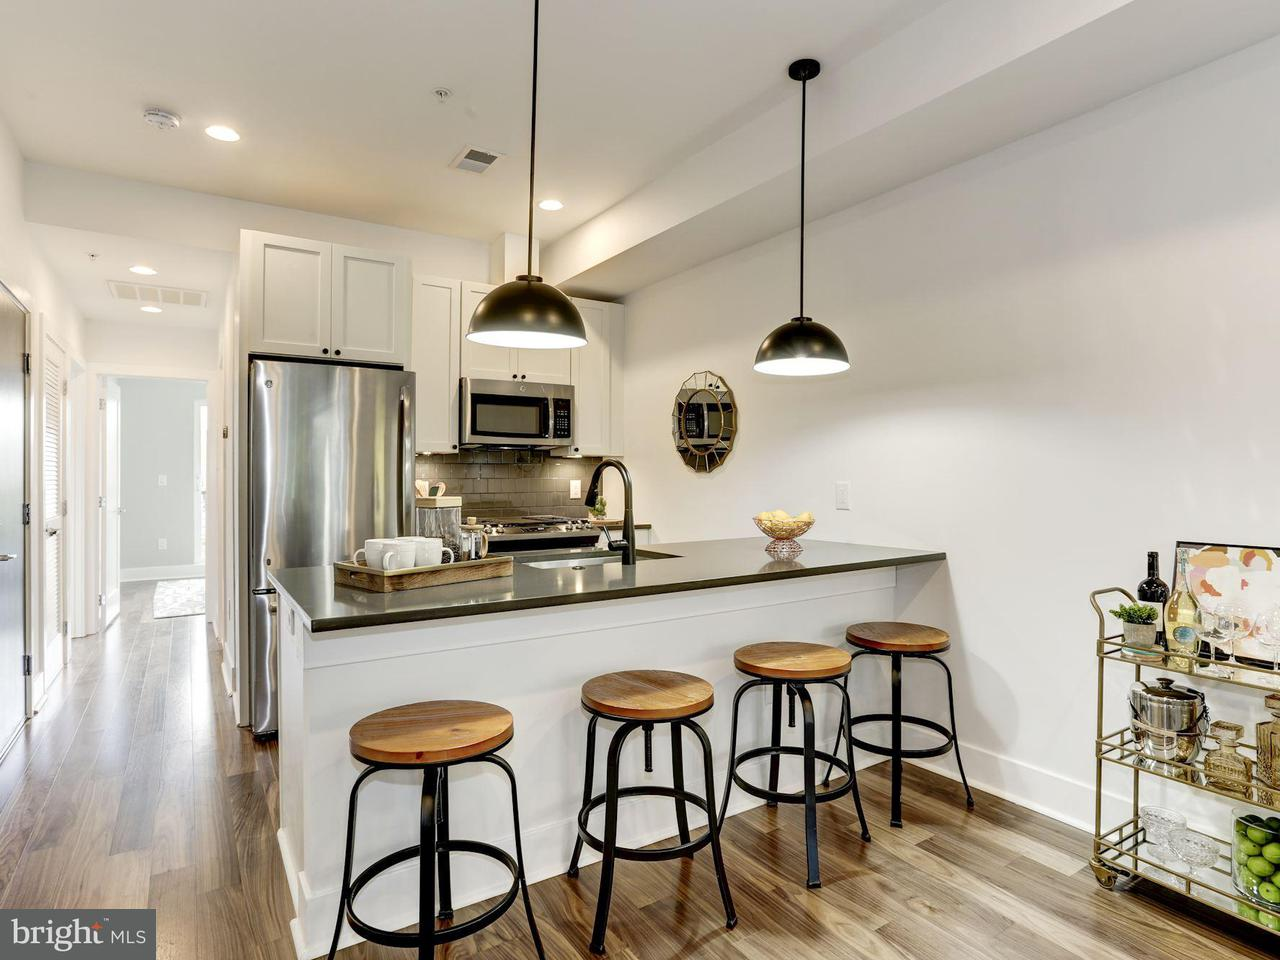 Single Family Home for Sale at 11 15TH ST NE #5 11 15TH ST NE #5 Washington, District Of Columbia 20002 United States